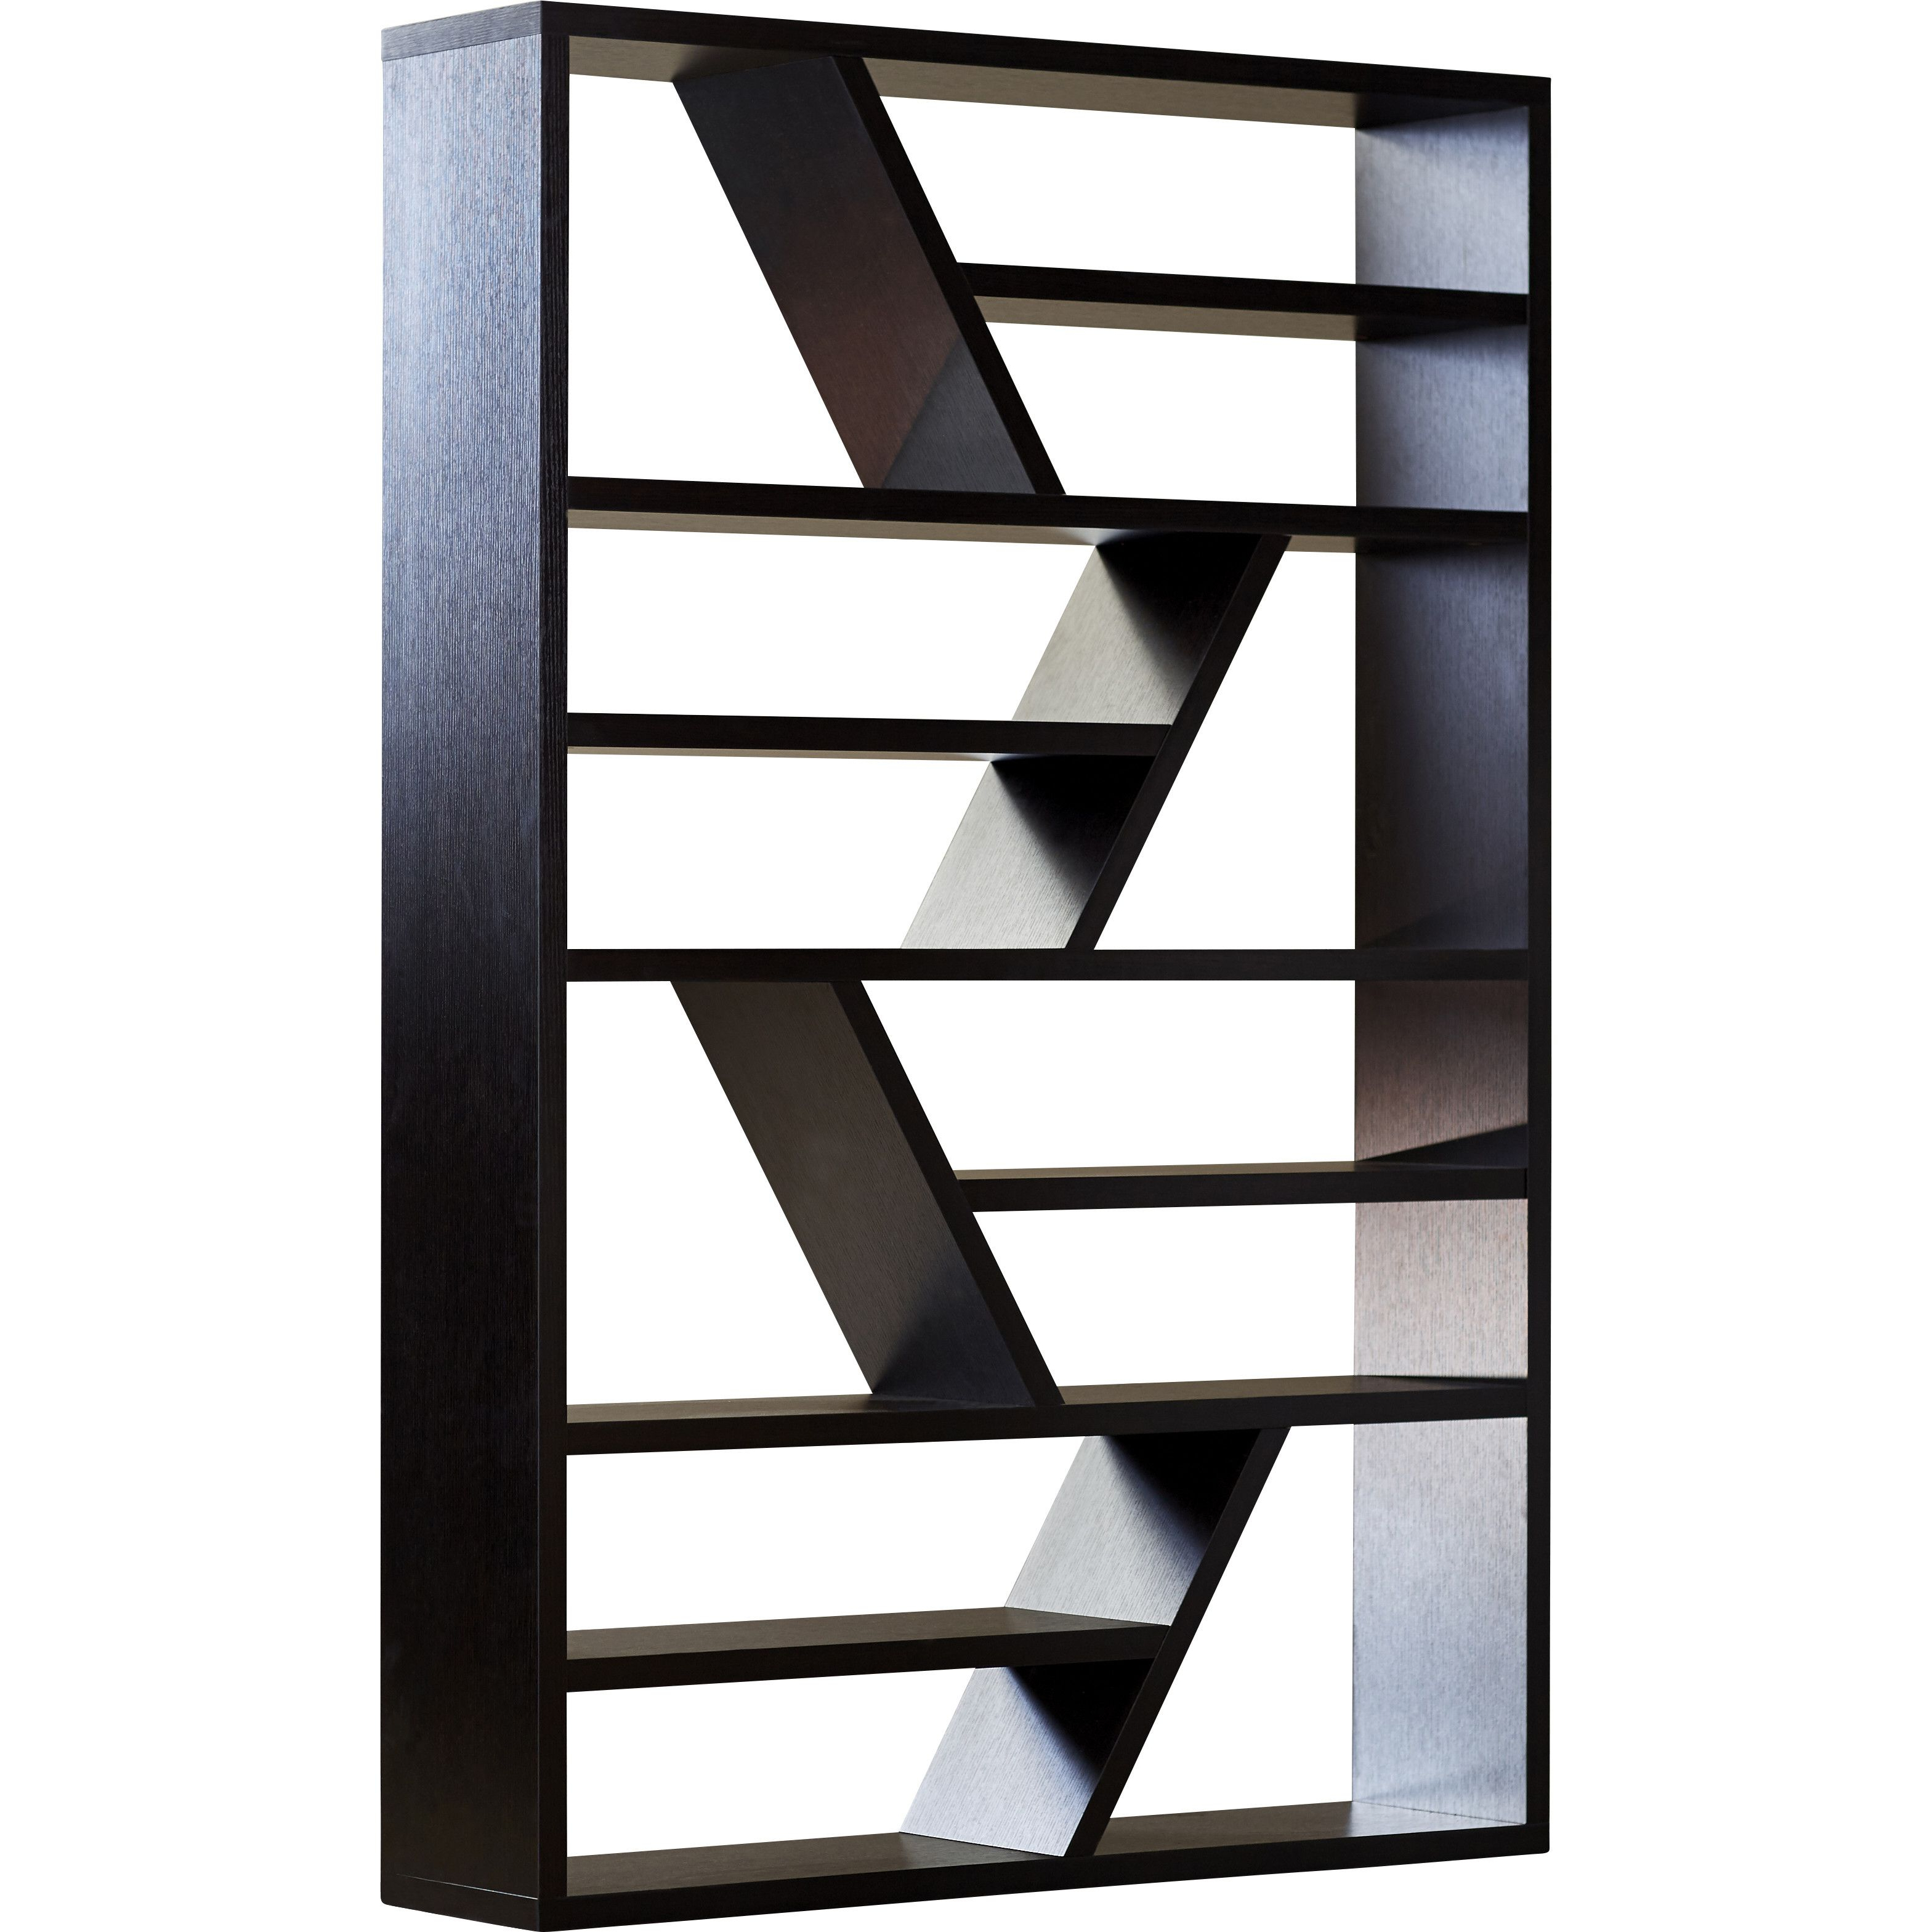 2020 Swarey Geometric Bookcases With Regard To Swarey Geometric Bookcase In  (View 2 of 20)